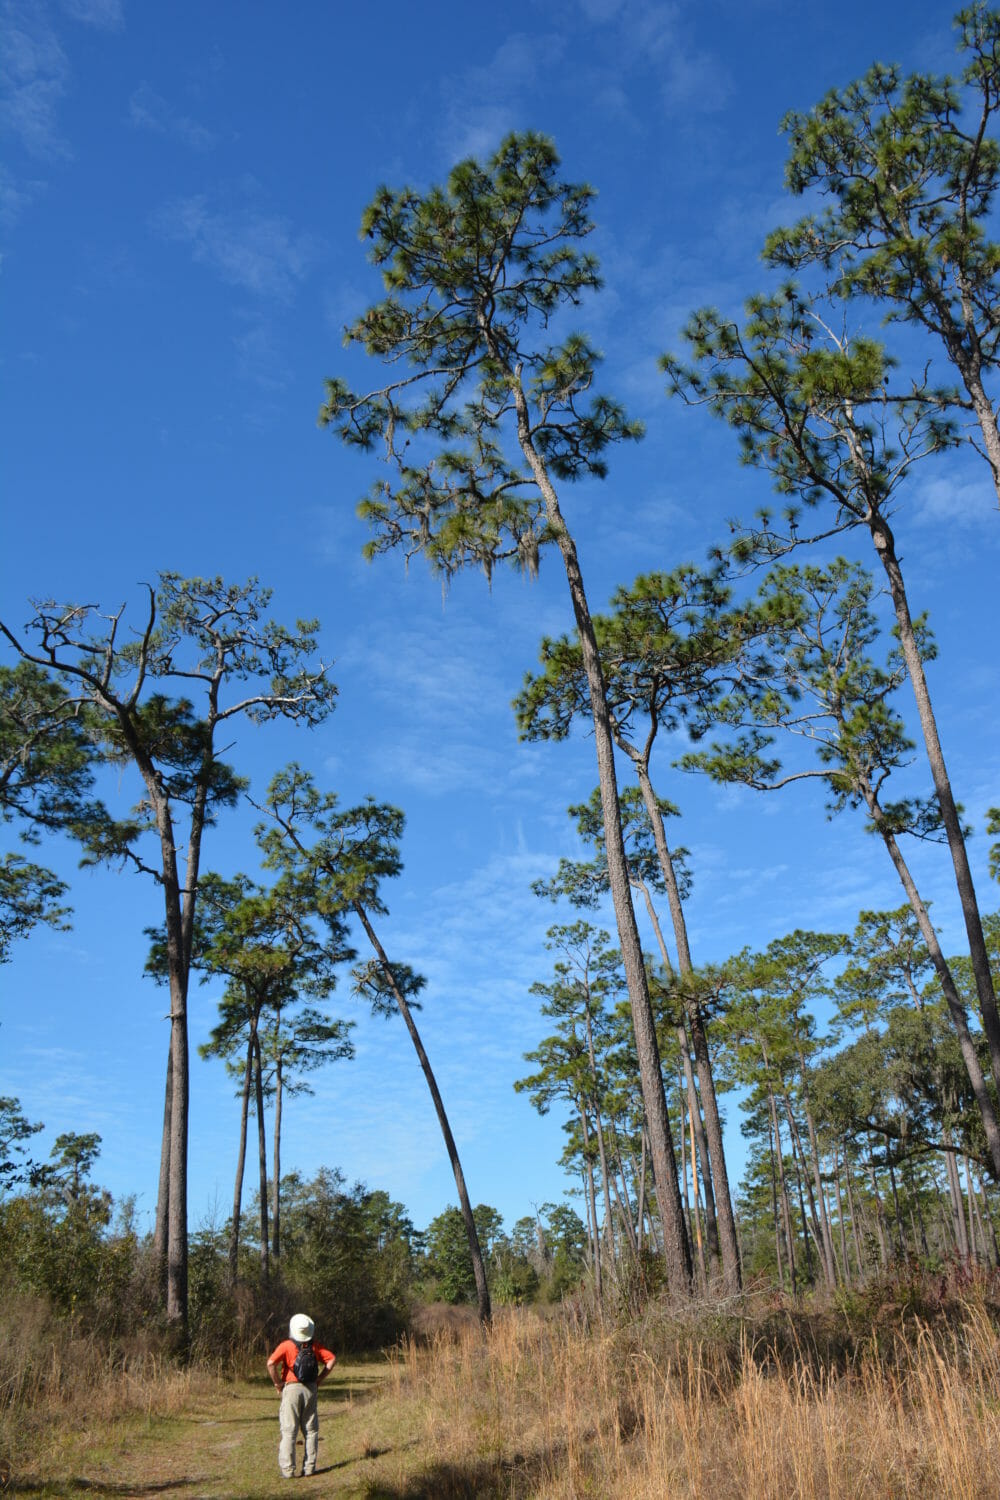 Home to Withlacoochee State Forest, Brooksville is the county seat of Hernando County and the heart of Florida's Adventure Coast. With a growing network of bike paths and plenty of trails, it's a great destination for outdoor recreation.